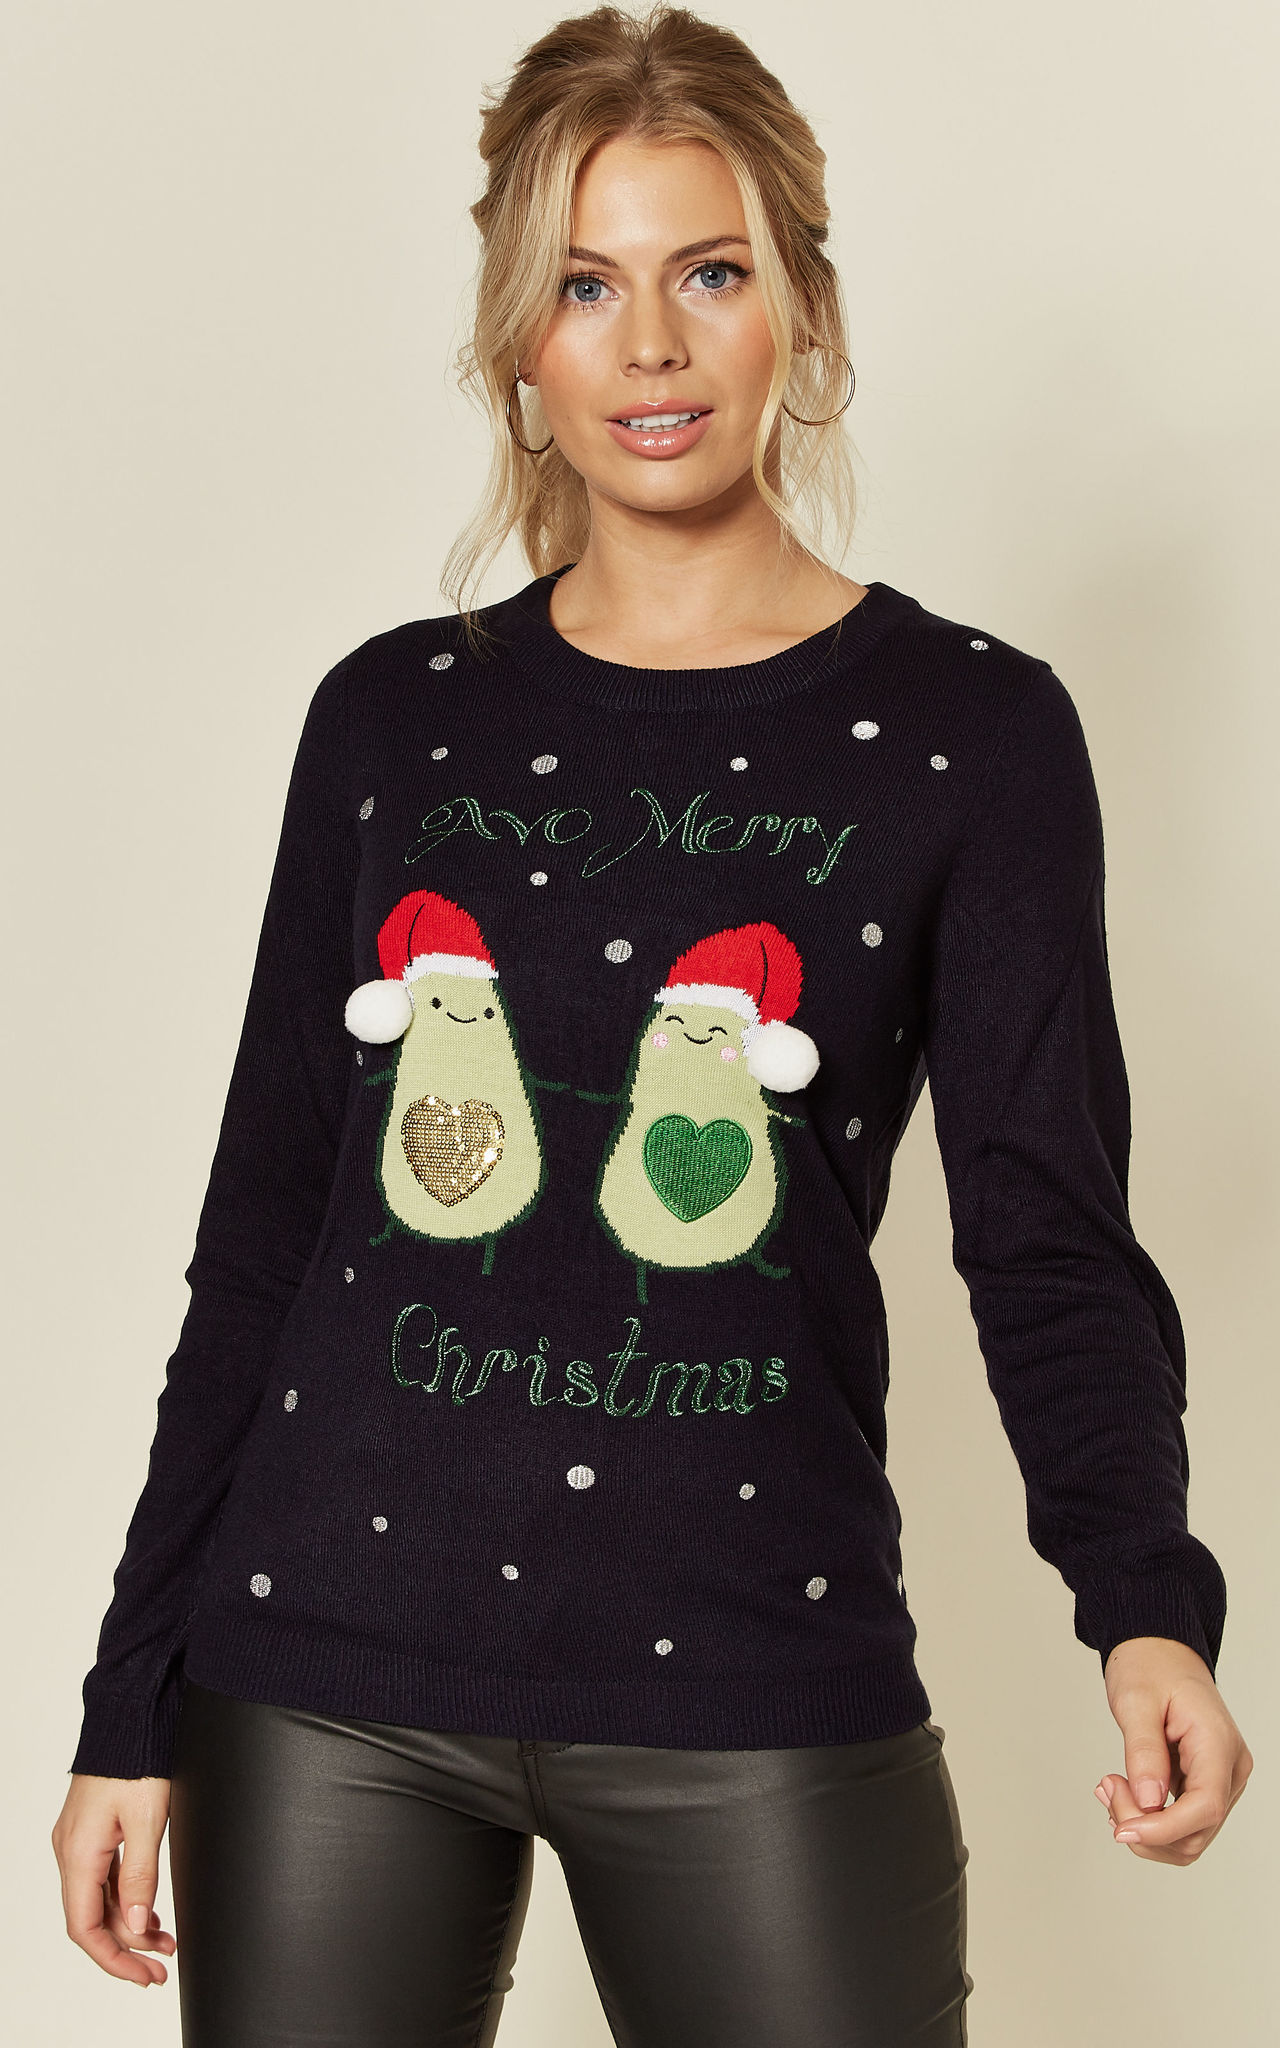 Model wears a navy embroidered avo merry christmas jumper with avocado embroidery